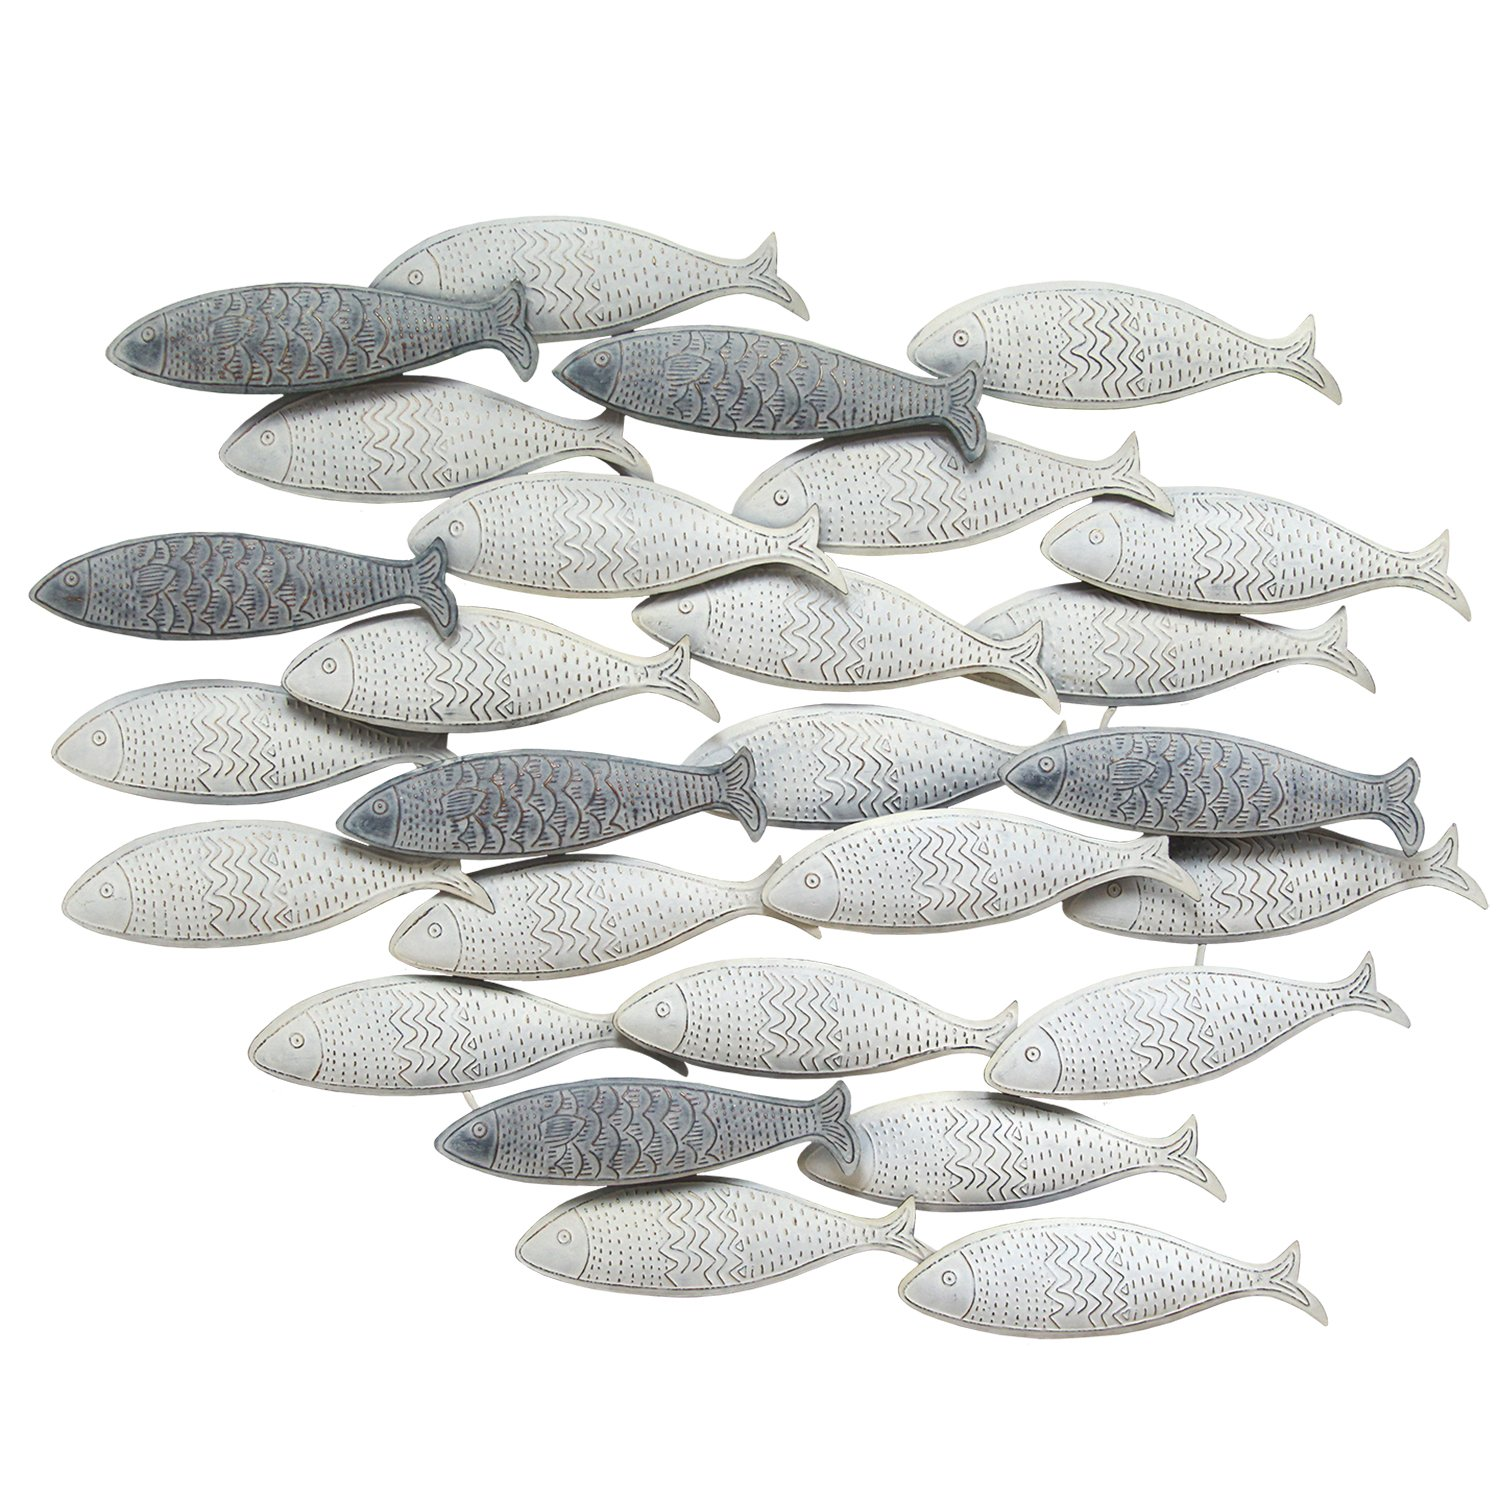 Stratton Home Decor S07742 School of Fish Wall Decor, Grey